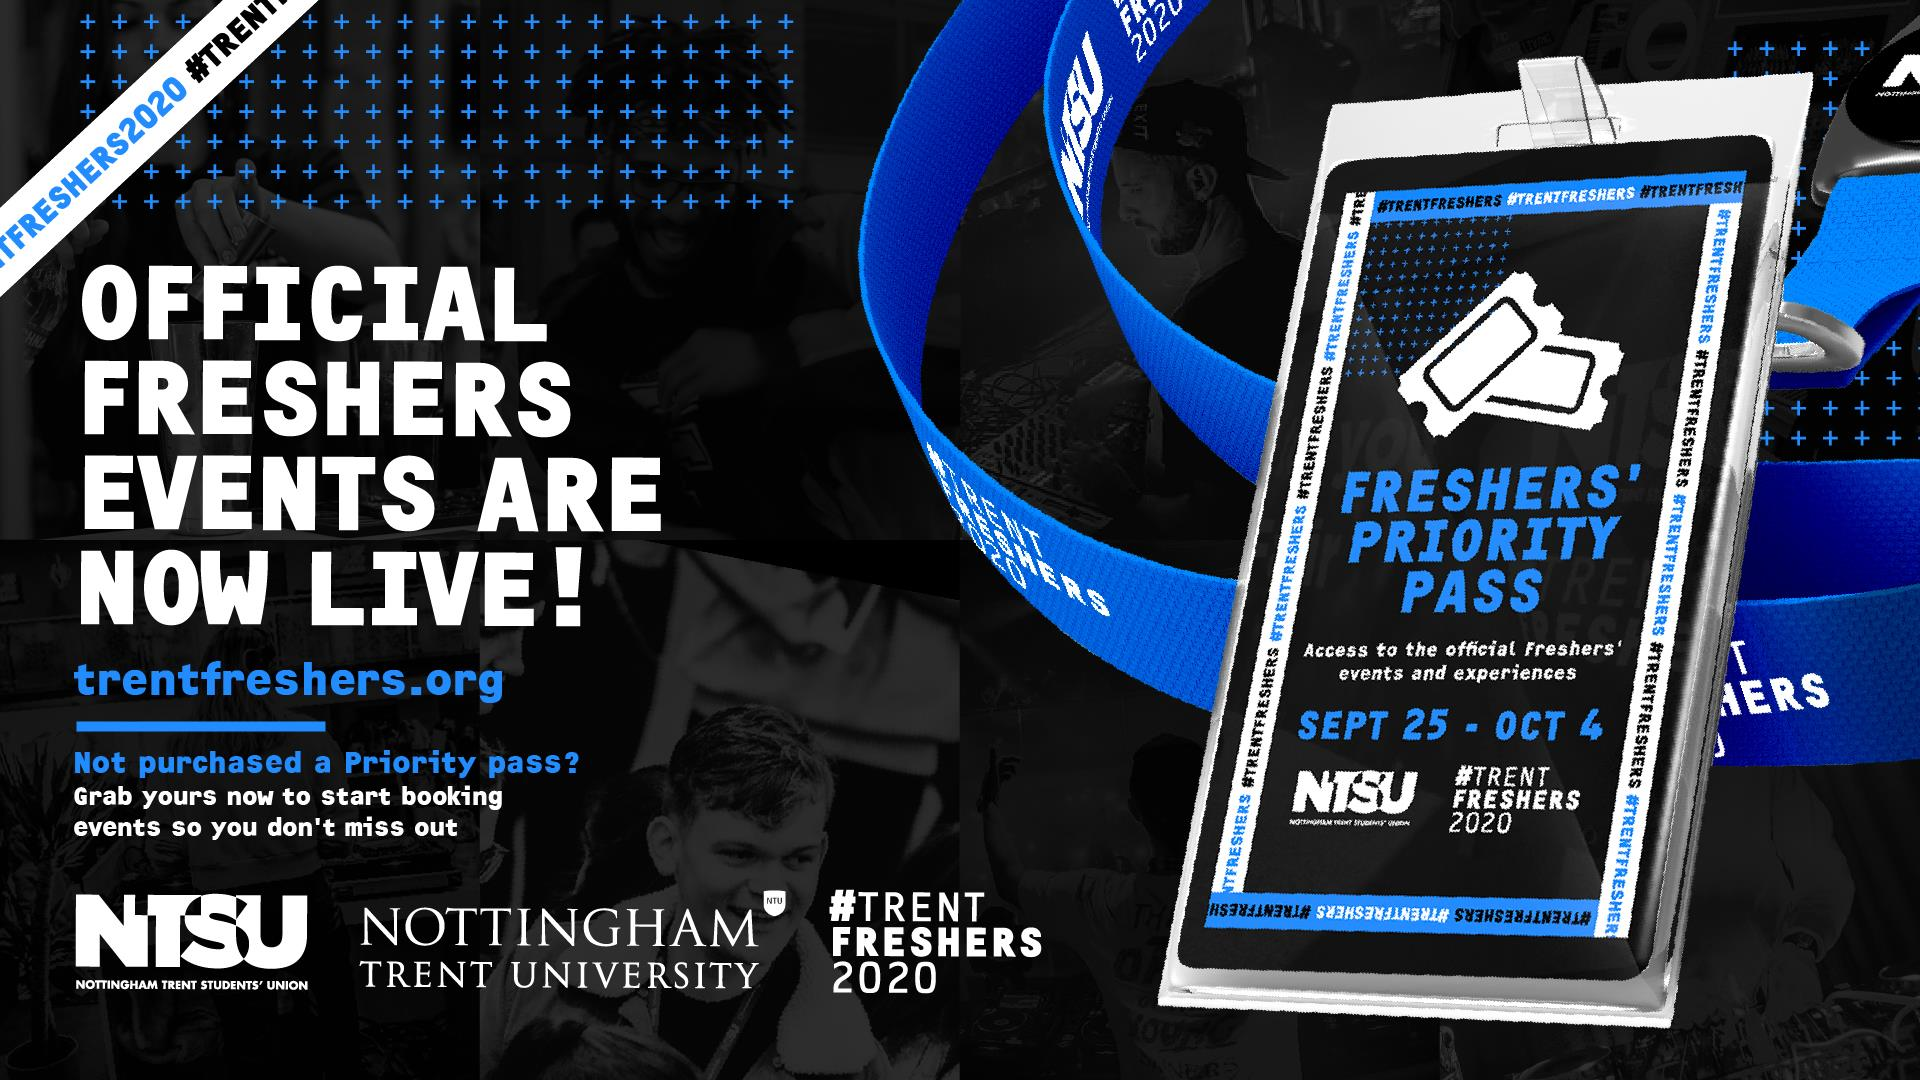 Official freshers events are now live! trentfreshers.org Not purchased a Priority pass? Grab your now to start booking events so you don't miss out